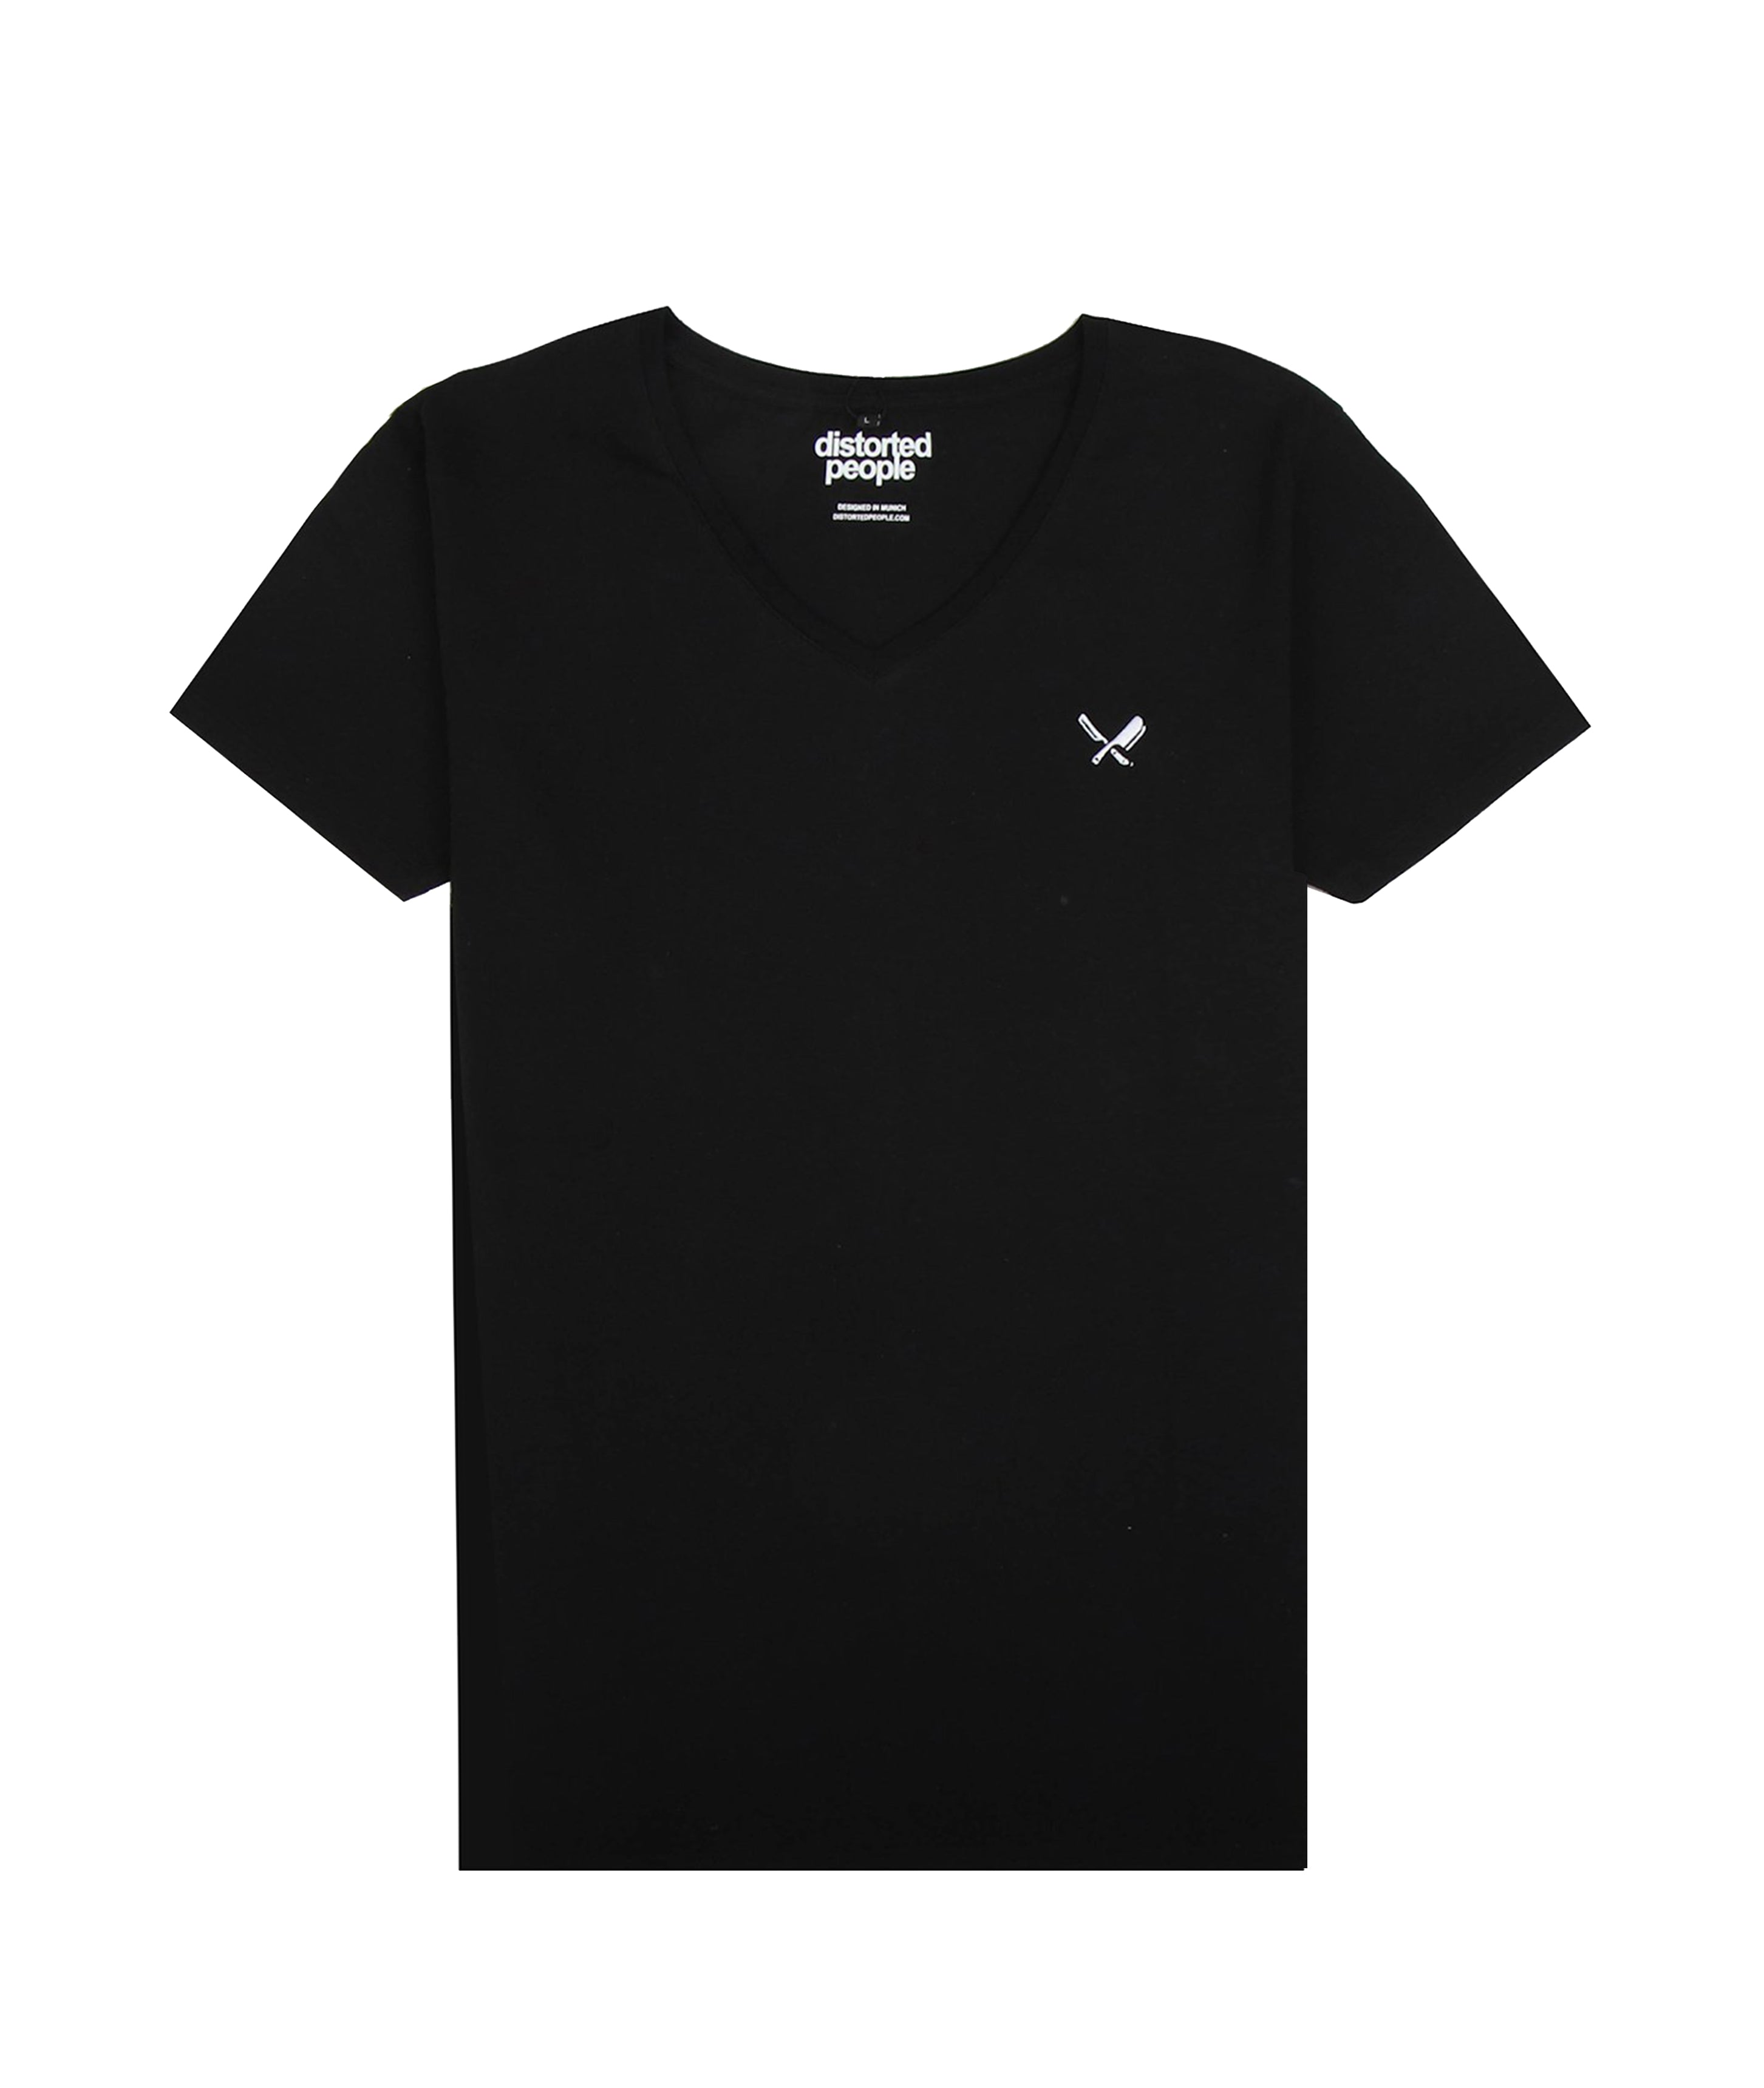 distorted people - Classic Grand V-Neck